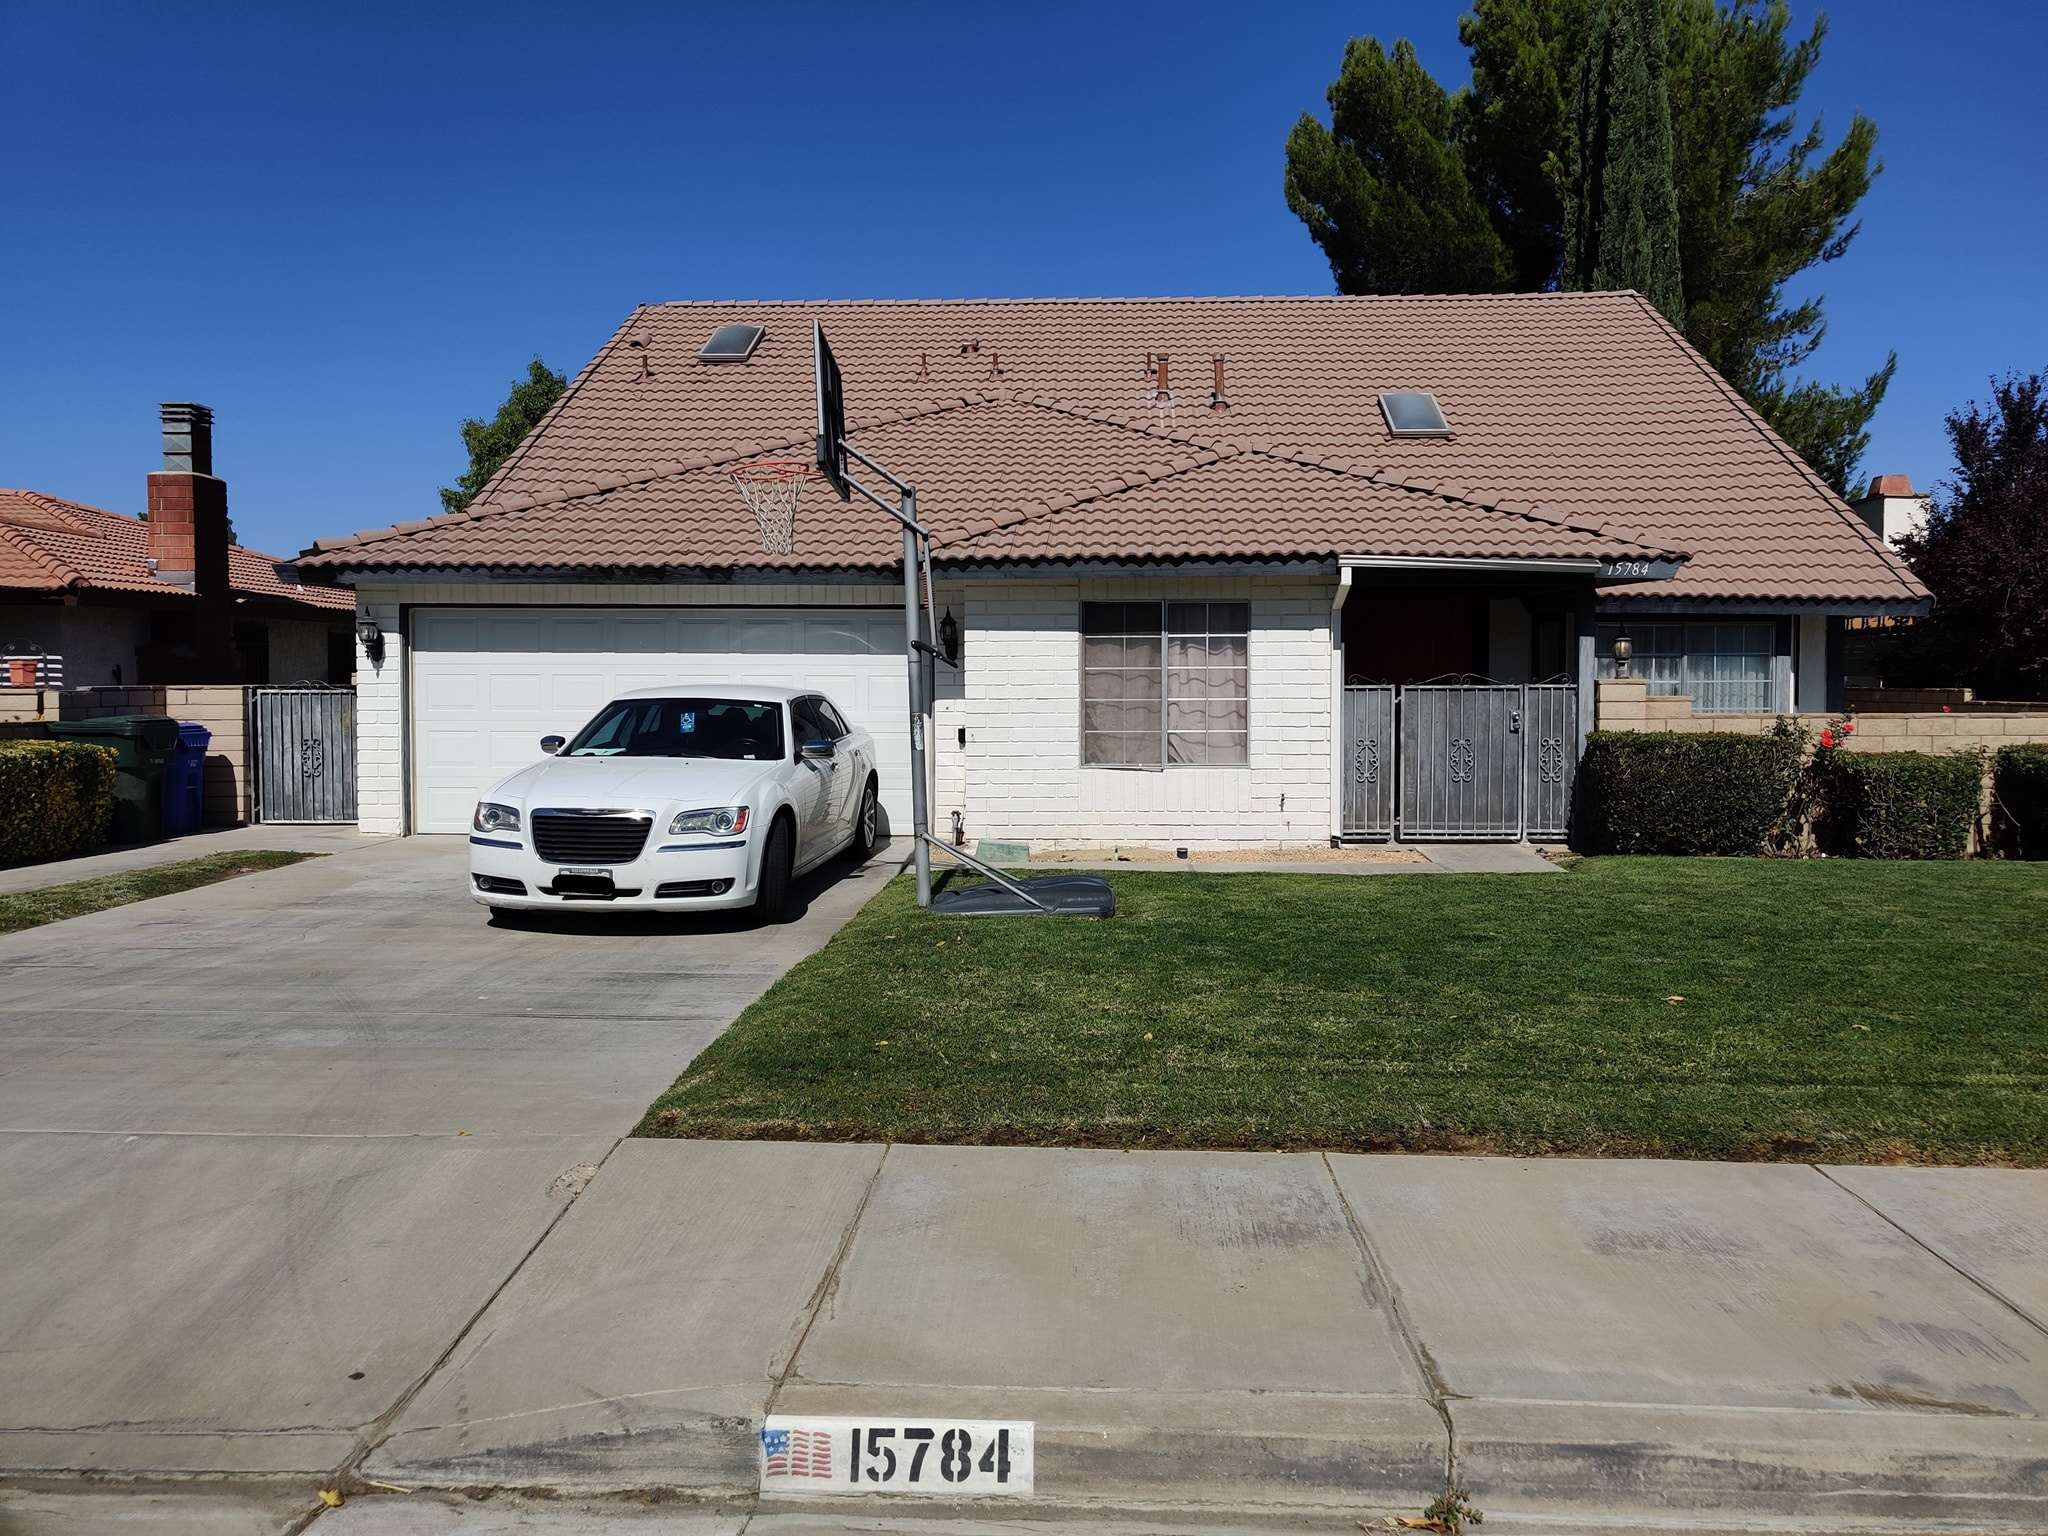 15784 Candlewood Dr, Victorville, CA 92395